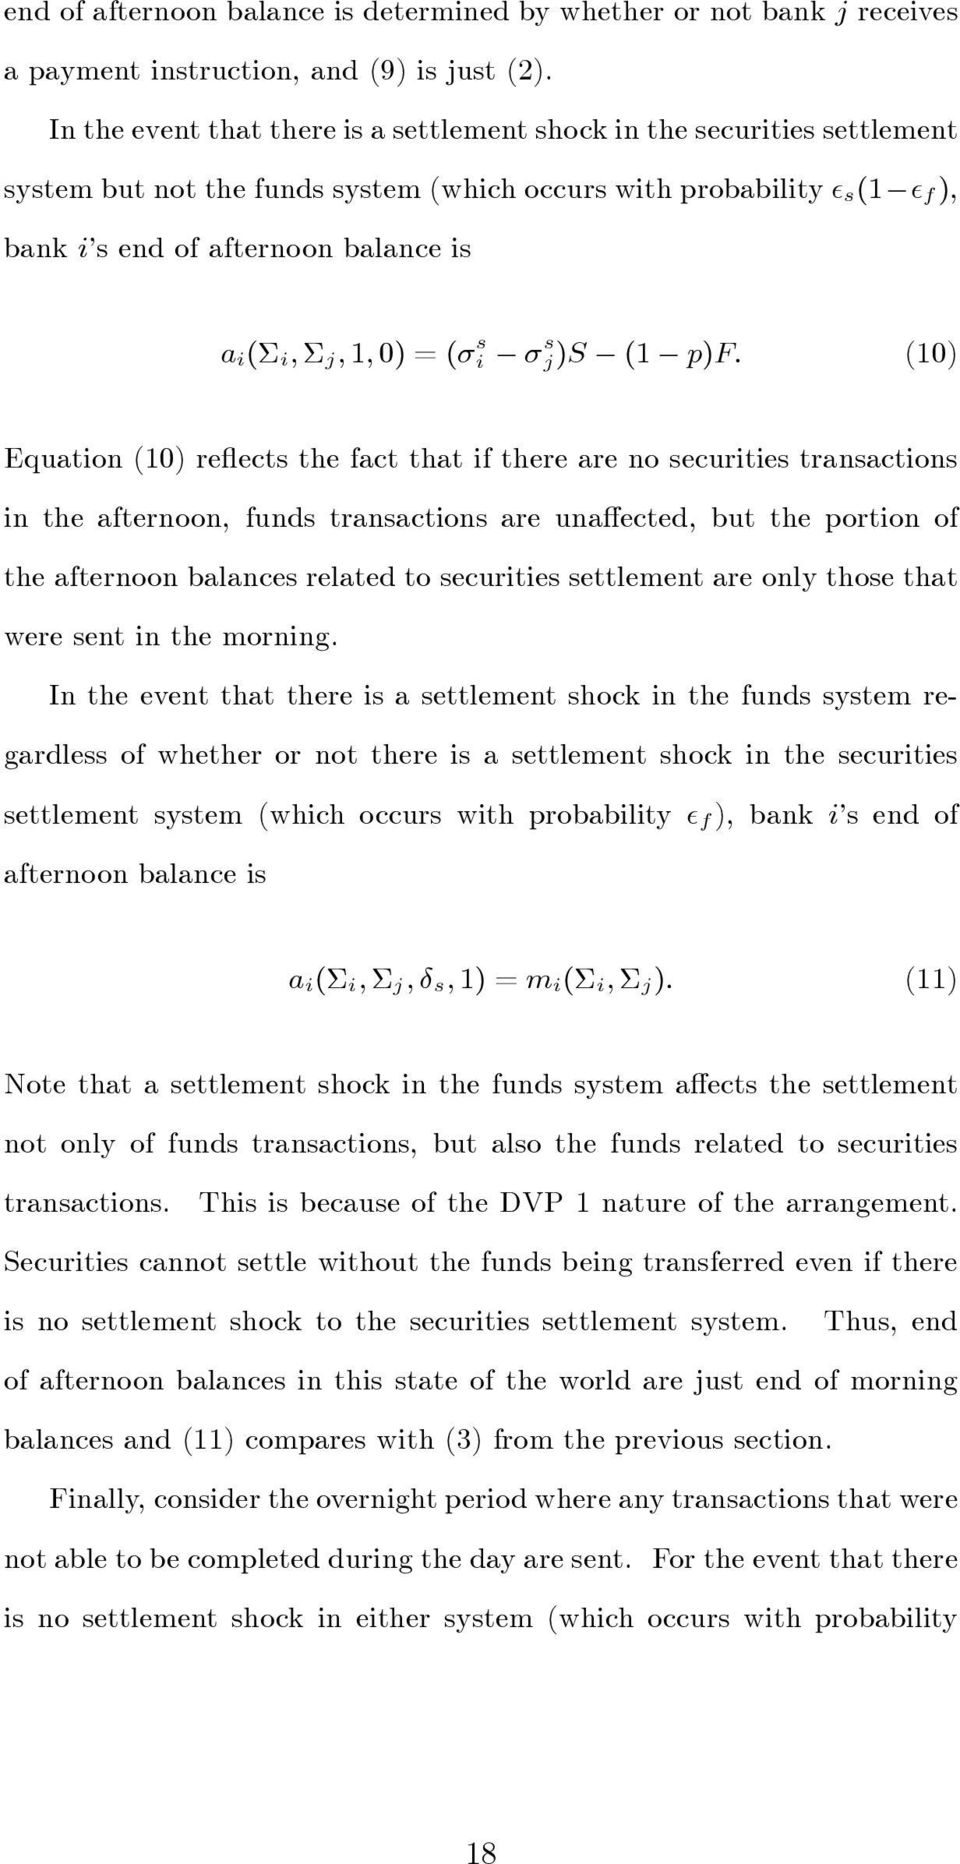 0) = ( s i s j)s (1 p)f: (10) Equation (10) re ects the fact that if there are no securities transactions in the afternoon, funds transactions are una ected, but the portion of the afternoon balances